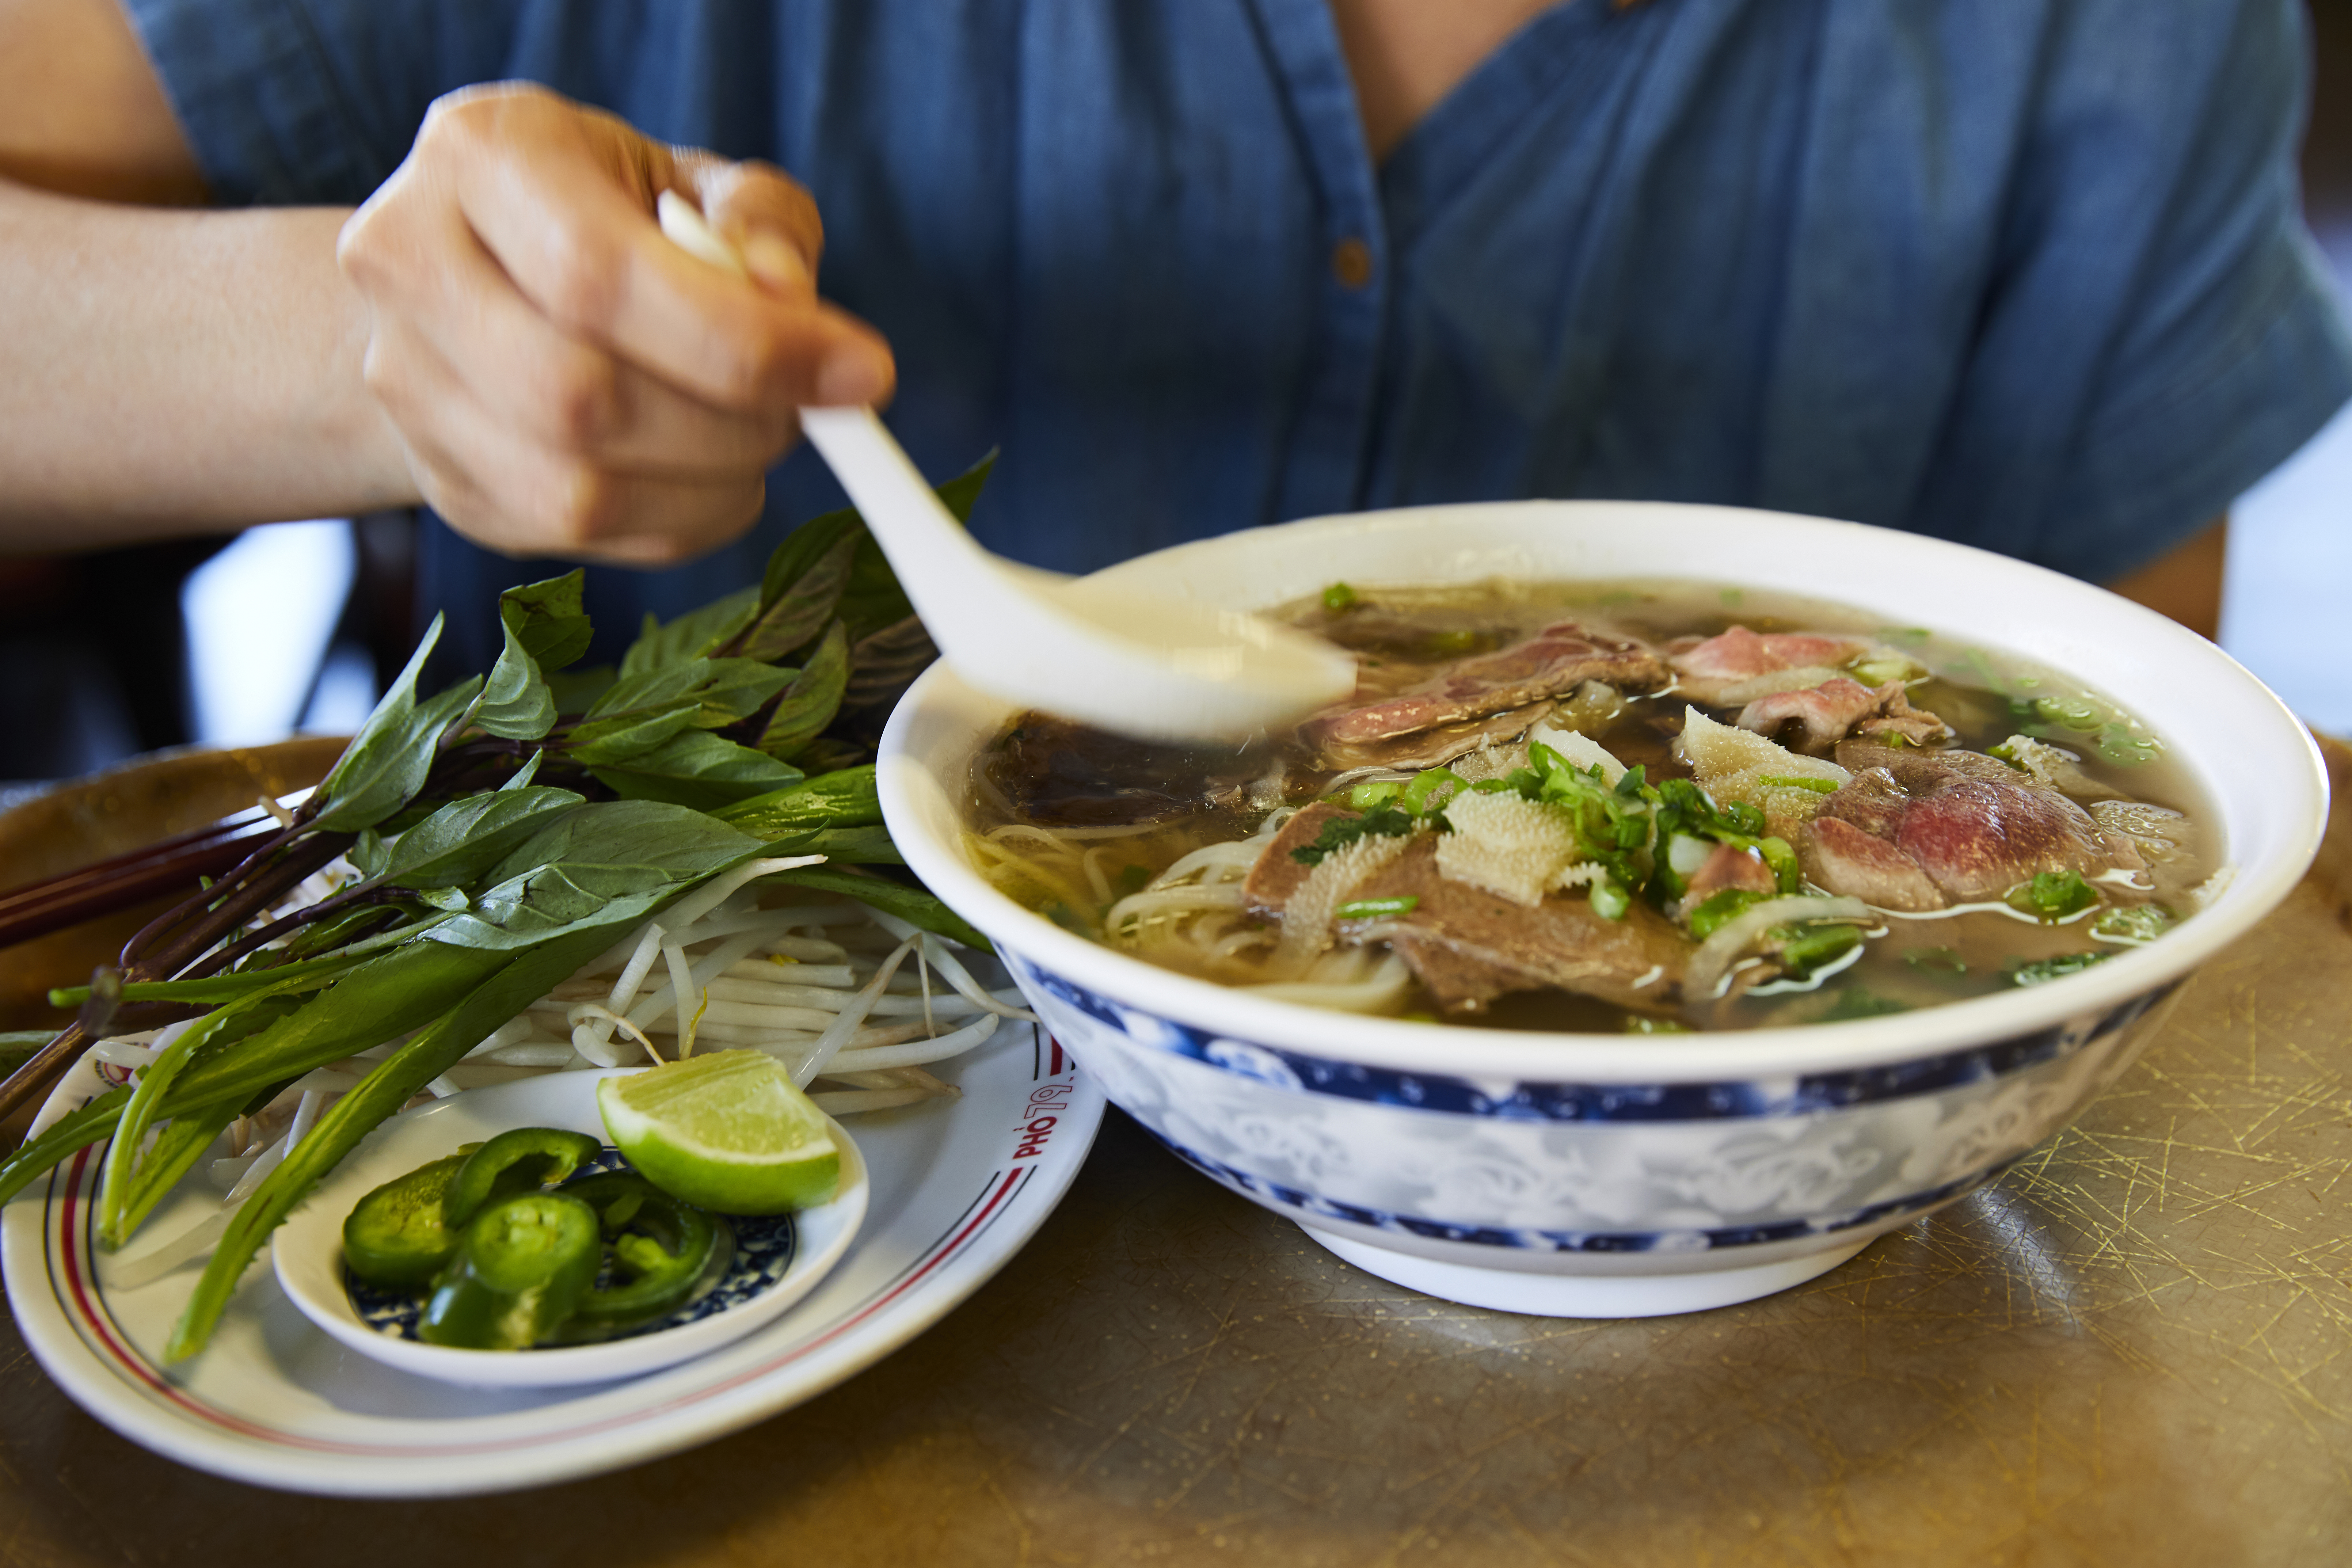 A diner digging into a bowl of steaming hot beef noodle soup at Pho 79 in Garden Grove.